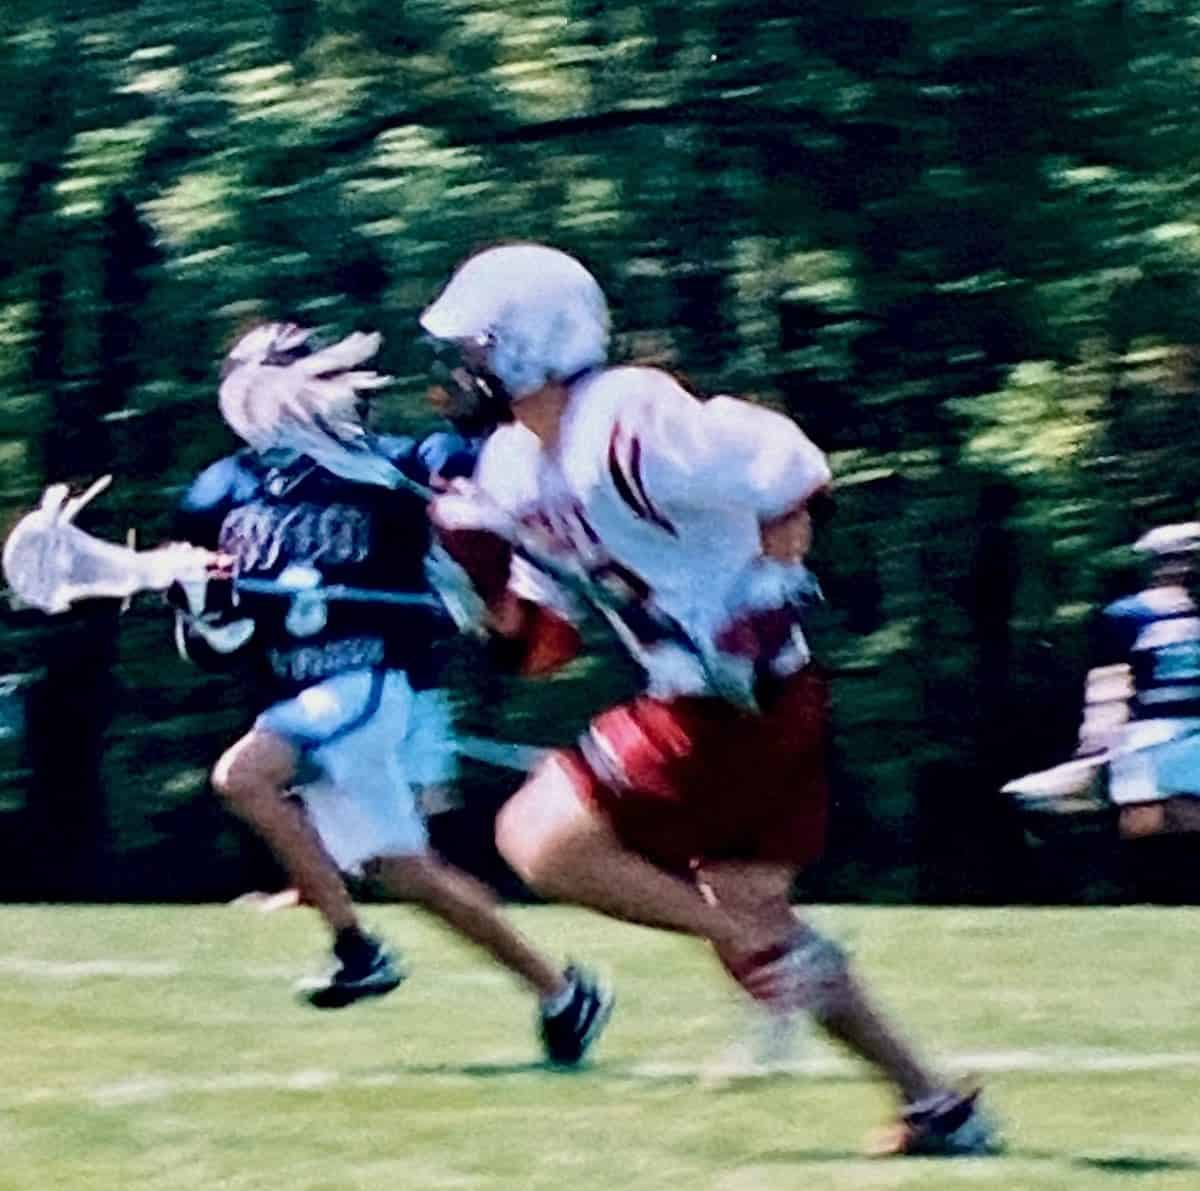 my son playing lacrosse